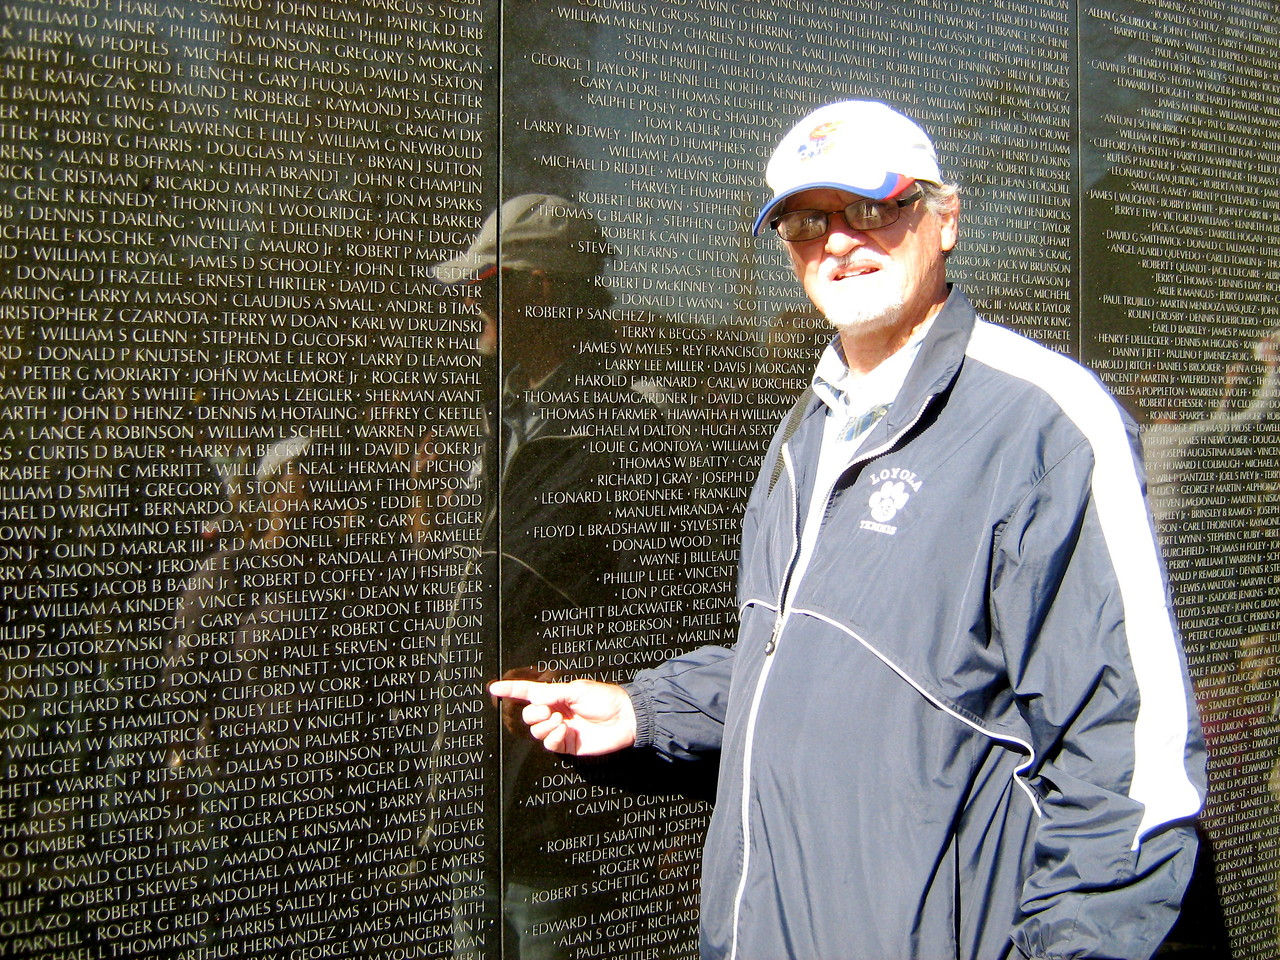 On a teach-in field trip to Washington, D.C. in 2011,  he led a tour of sites to see. Here he poses at the Vietnam Veterans War Memorial and points out the name of a friend who died in the war.  We remember you, Lt. John Hogan.